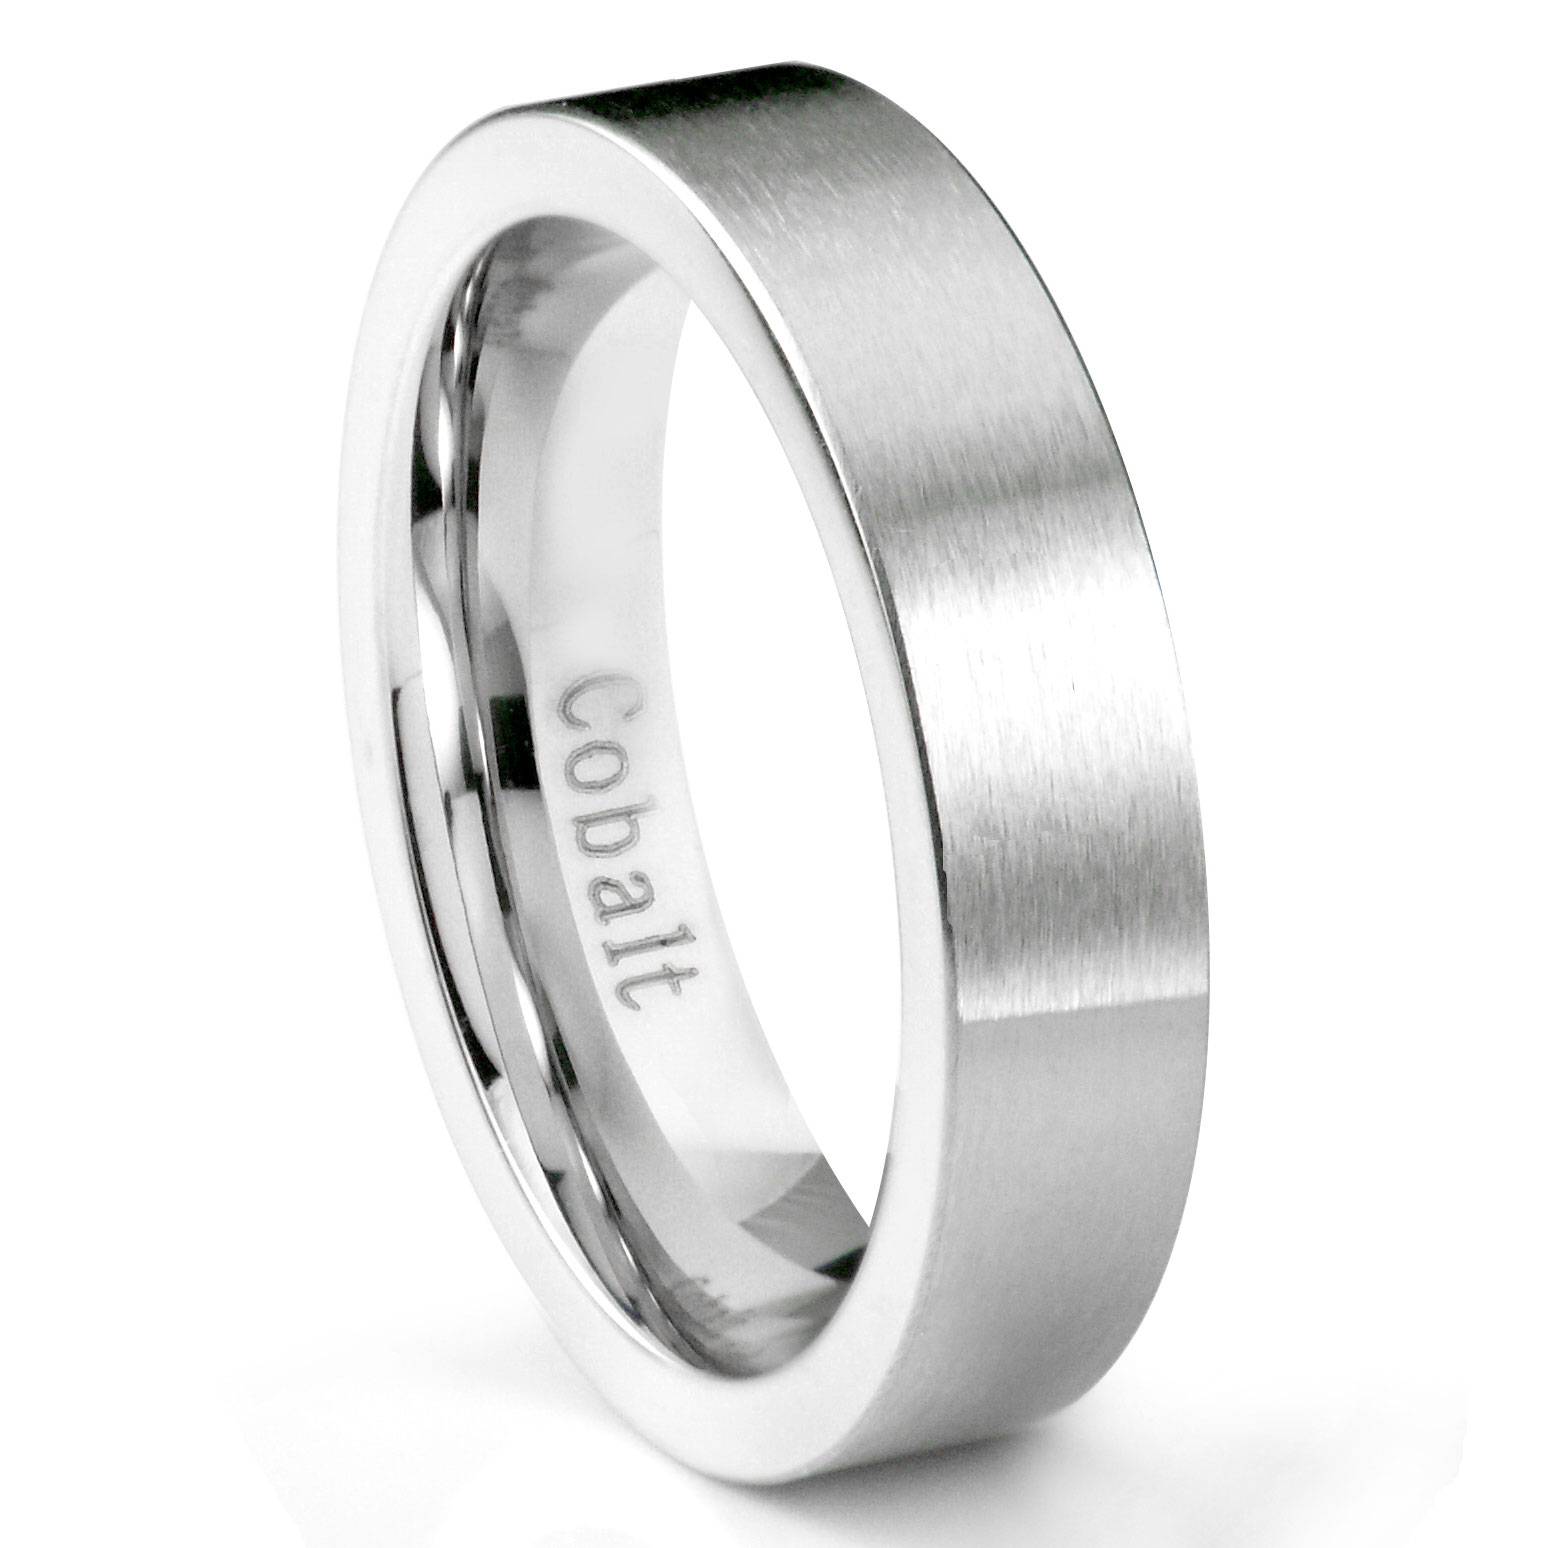 cobalt chrome 6mm brushed pipe cut wedding band ring